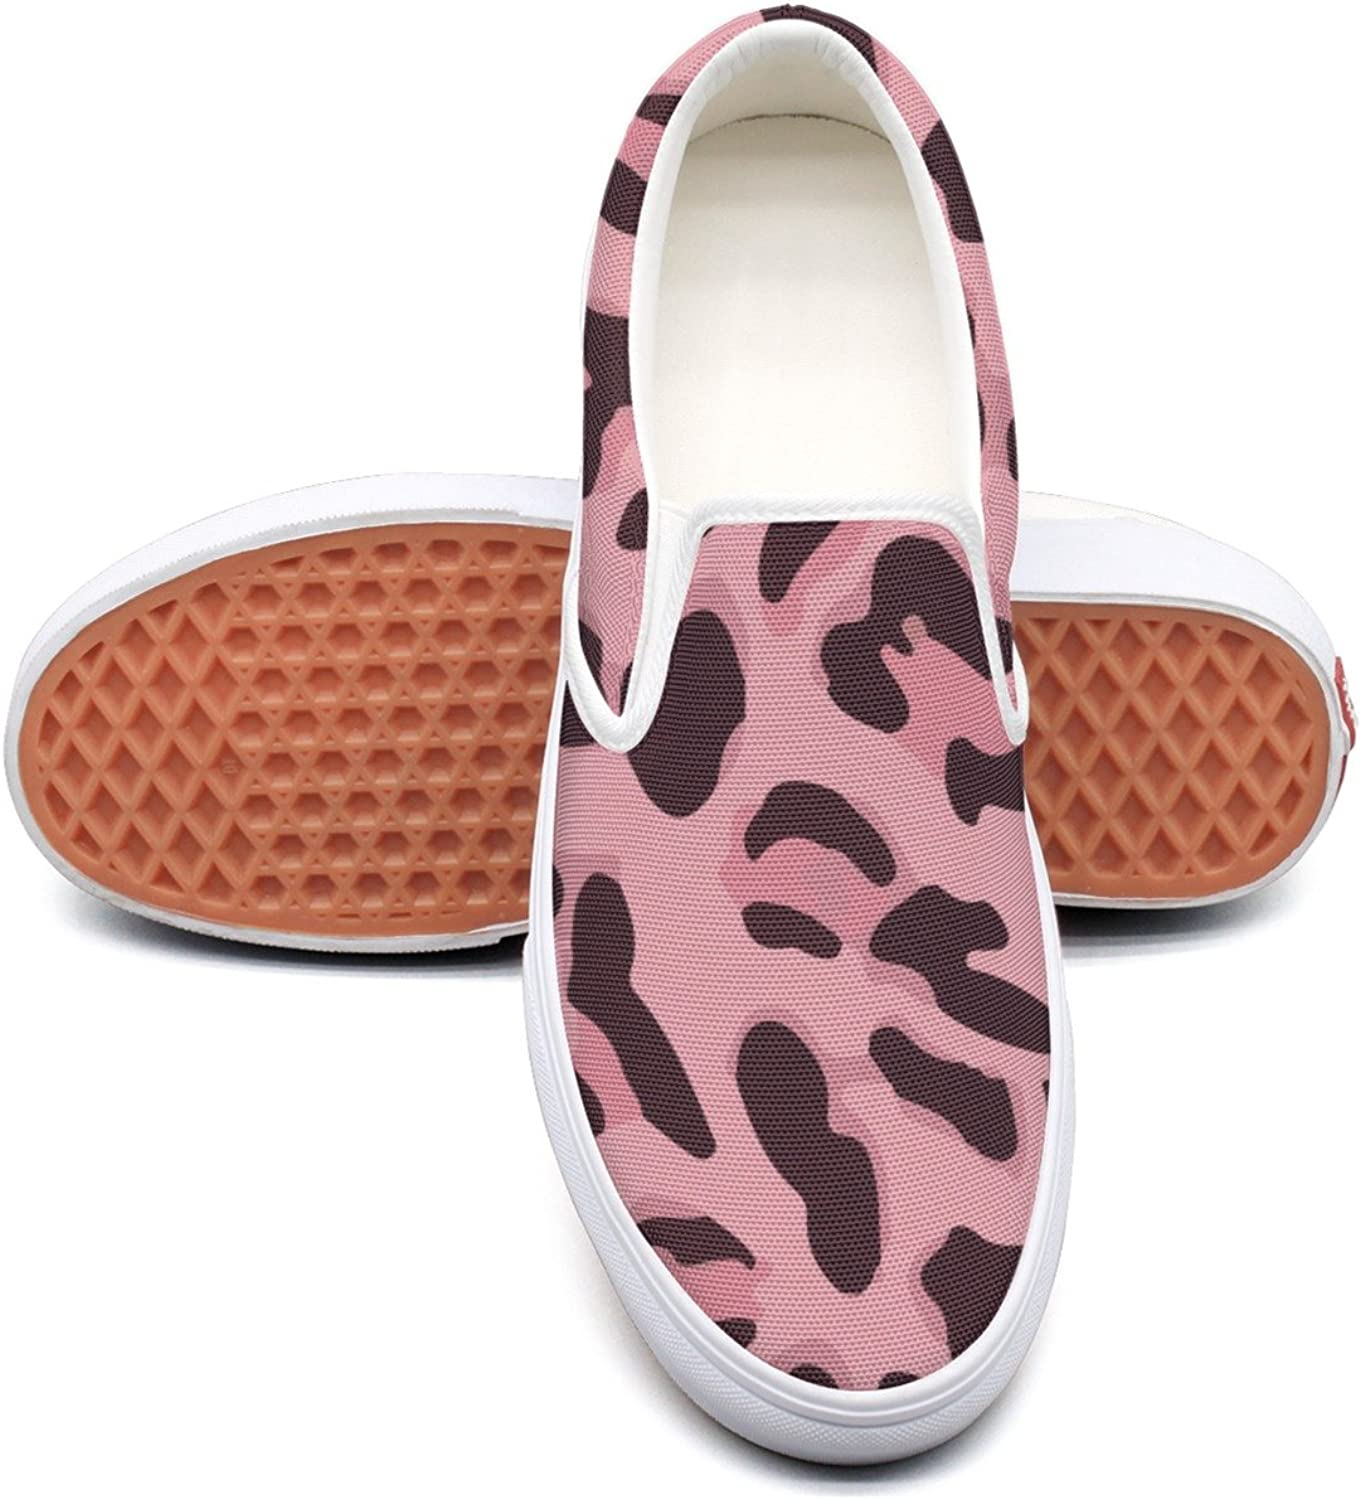 RegiDreae Canvas Slip On Sneakers for Women Animal Print Pink Fashion Sneaker